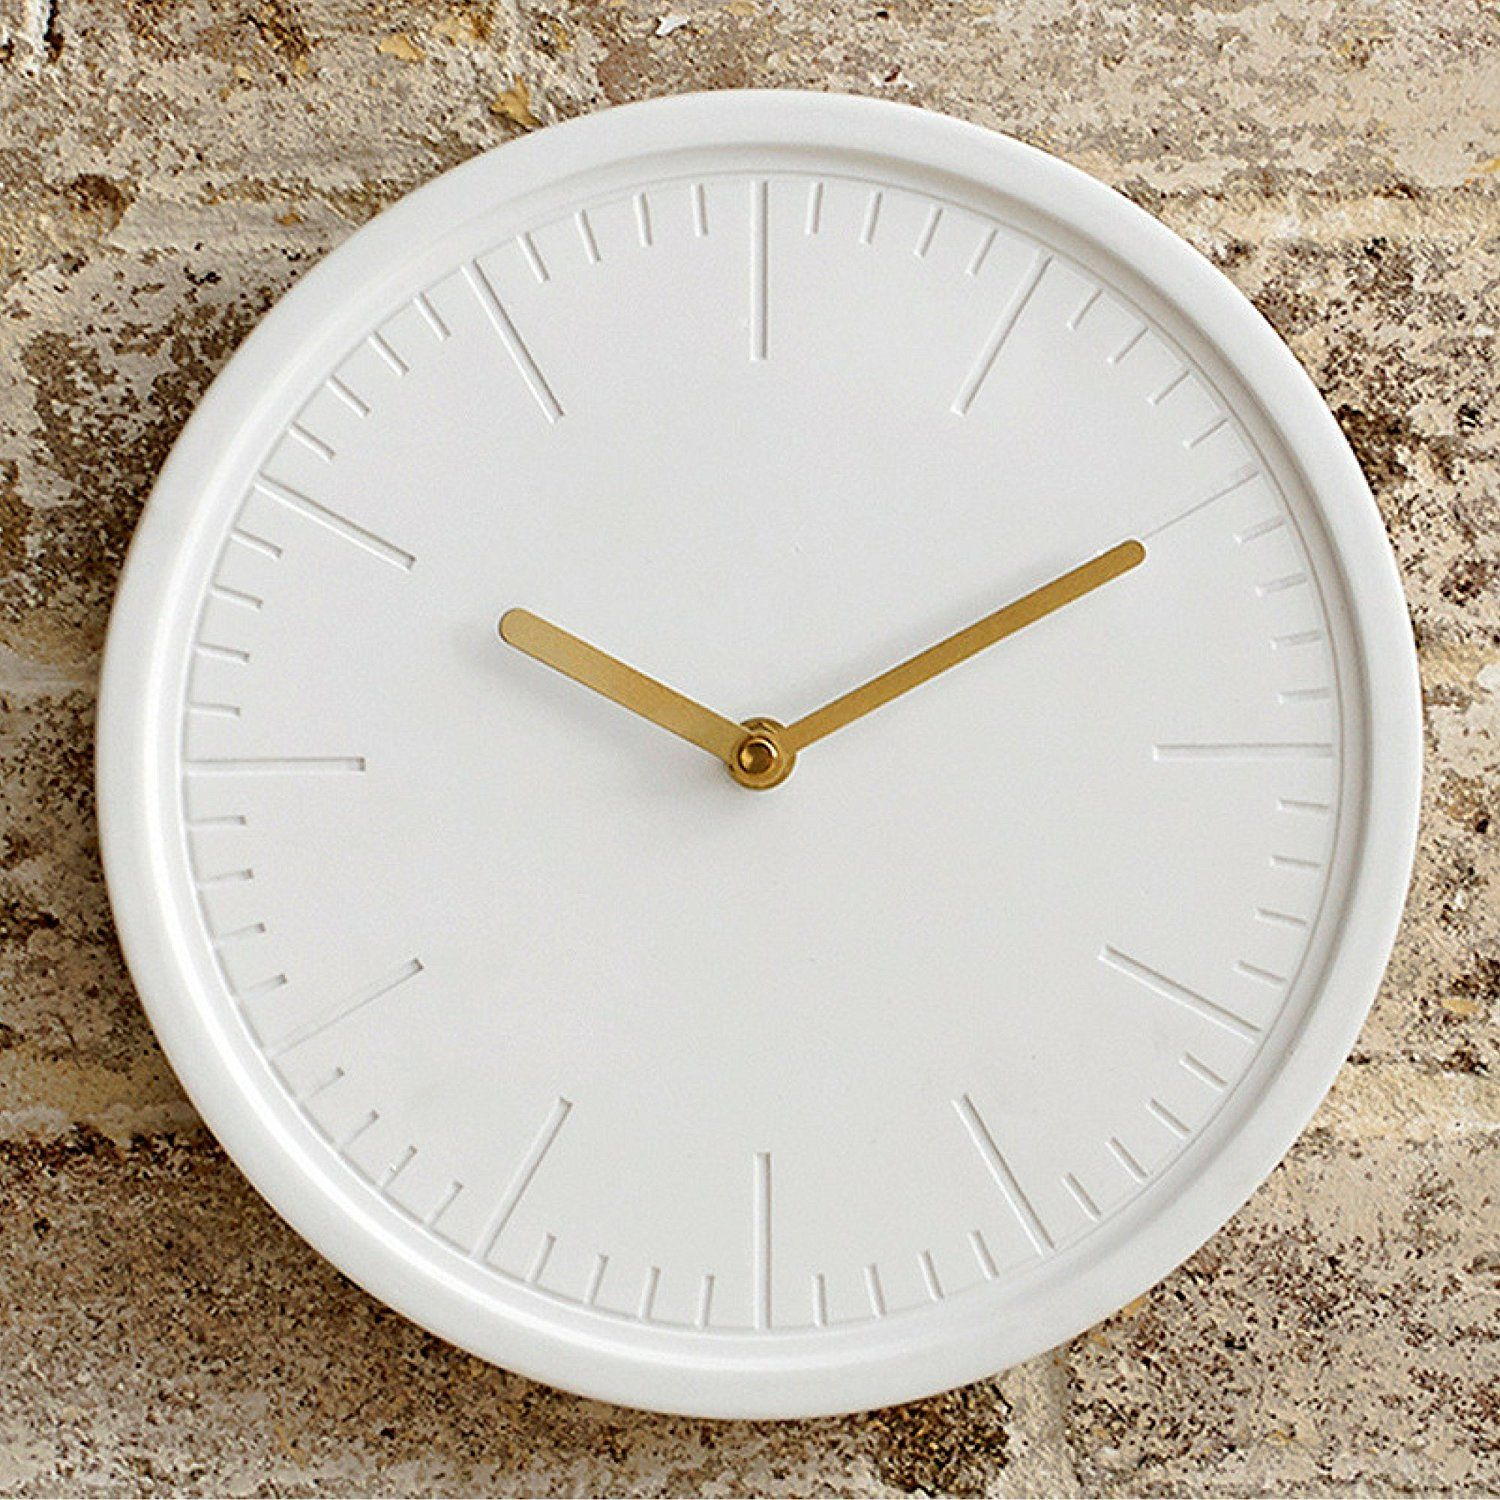 Amazon Com White Wall Clock By Beautiful Things Online Round 10 Inch Ceramic Face Gold Hands Silent Quar White Wall Clocks Clock Wall Decor Wall Clock